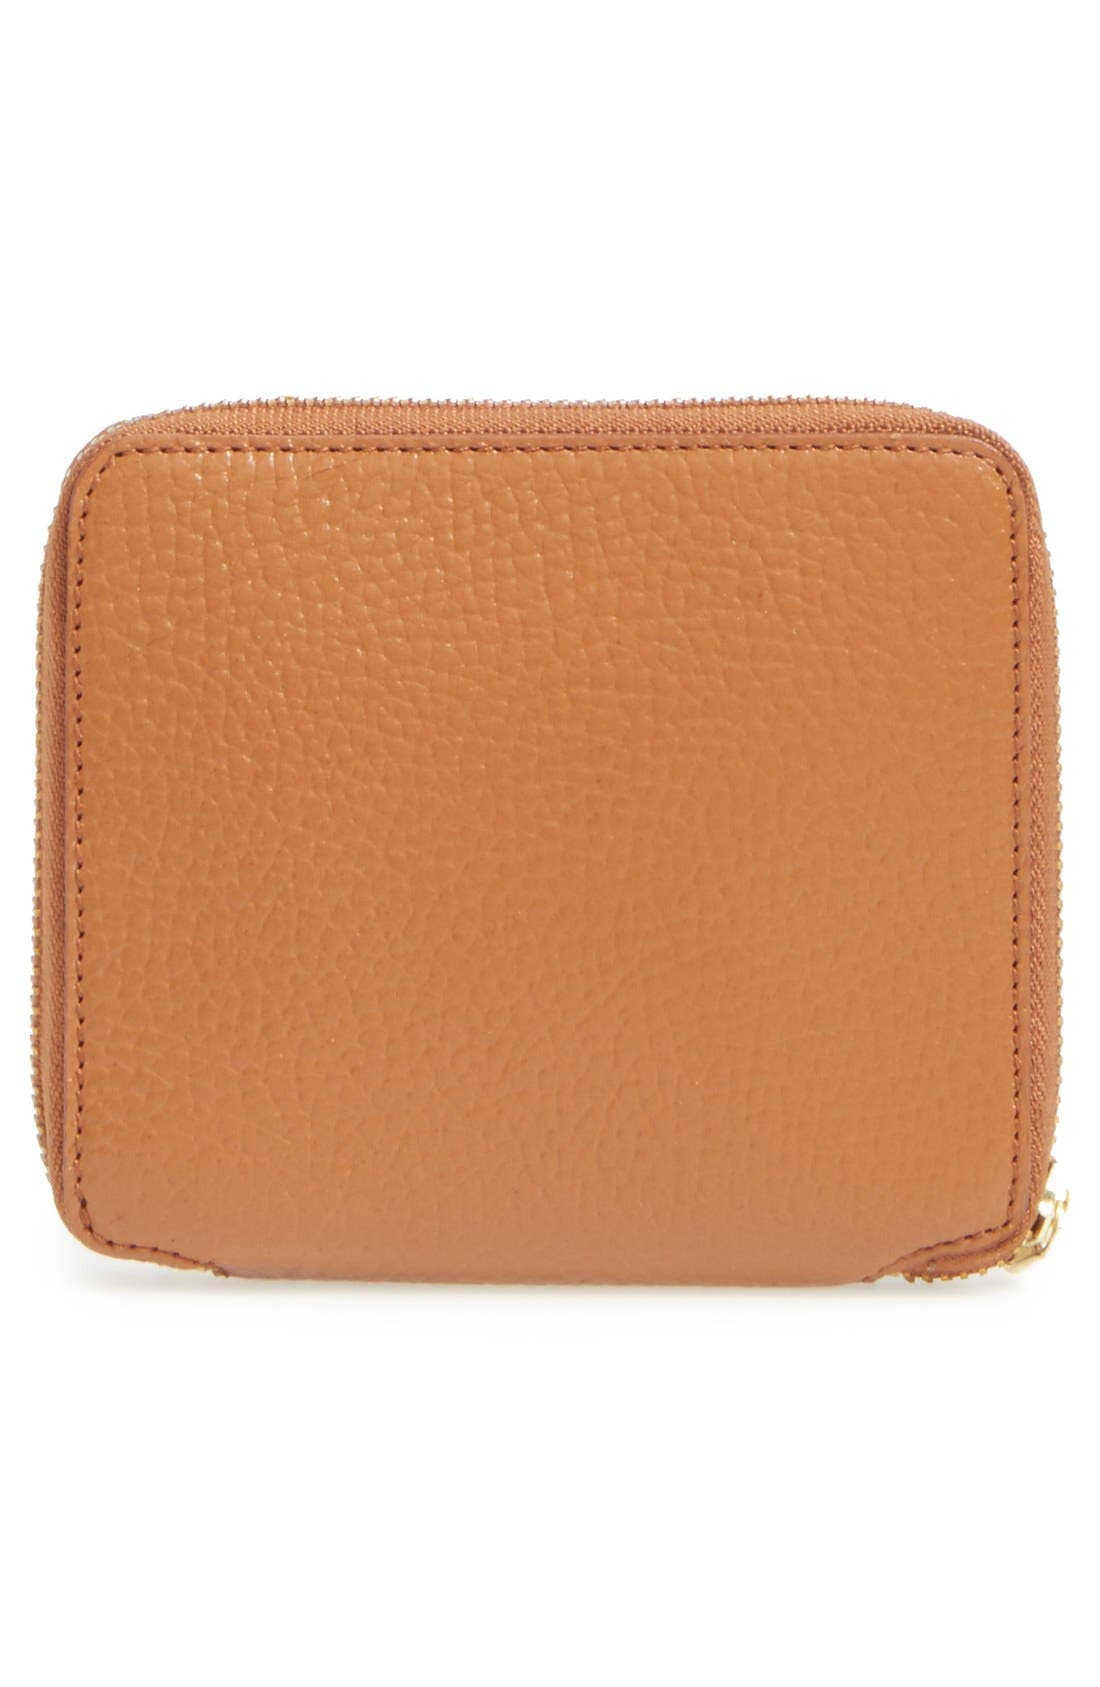 Leather Wallet,                             Alternate thumbnail 3, color,                             200